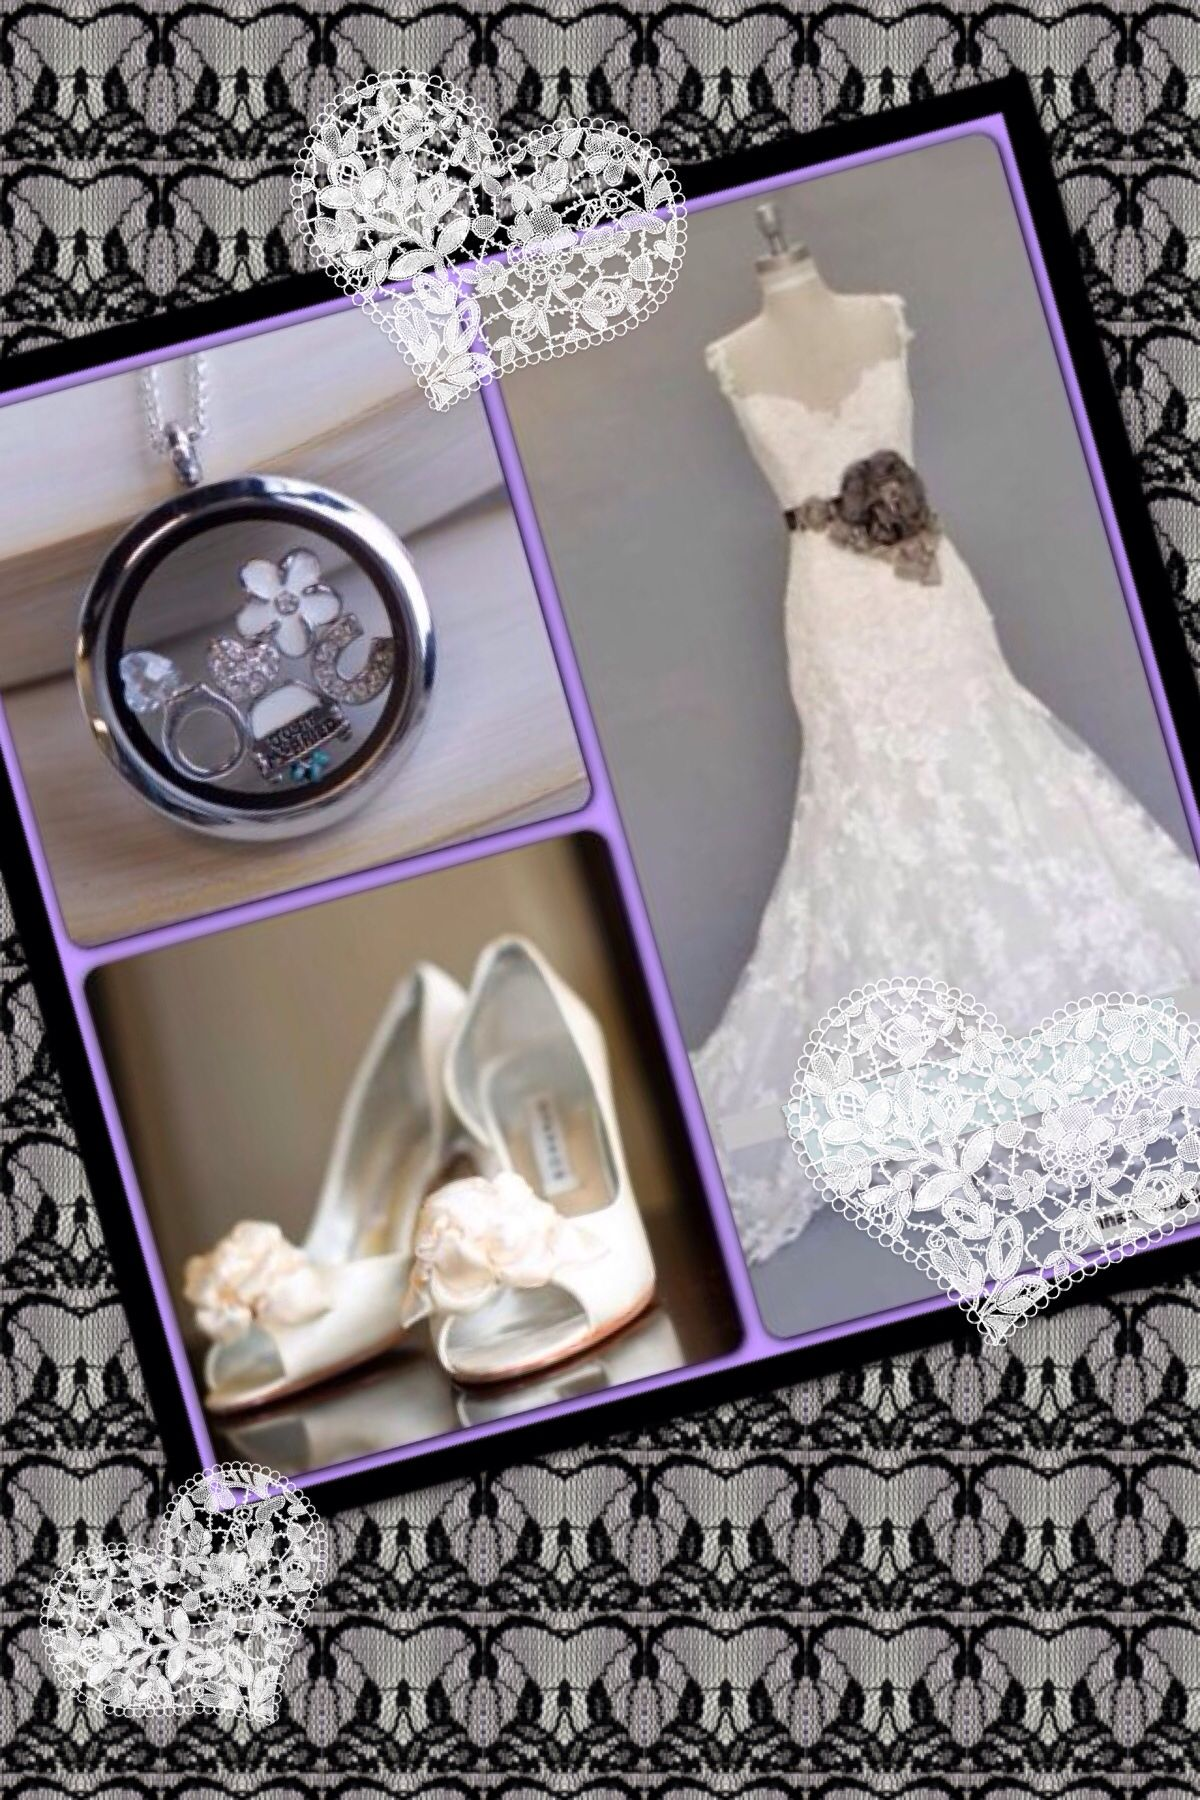 Bridal Origami Owl Living Locket -  how beautiful. Contact me at staceyhlocket@gmail.com. Order at staceyhead.origamiowl.com